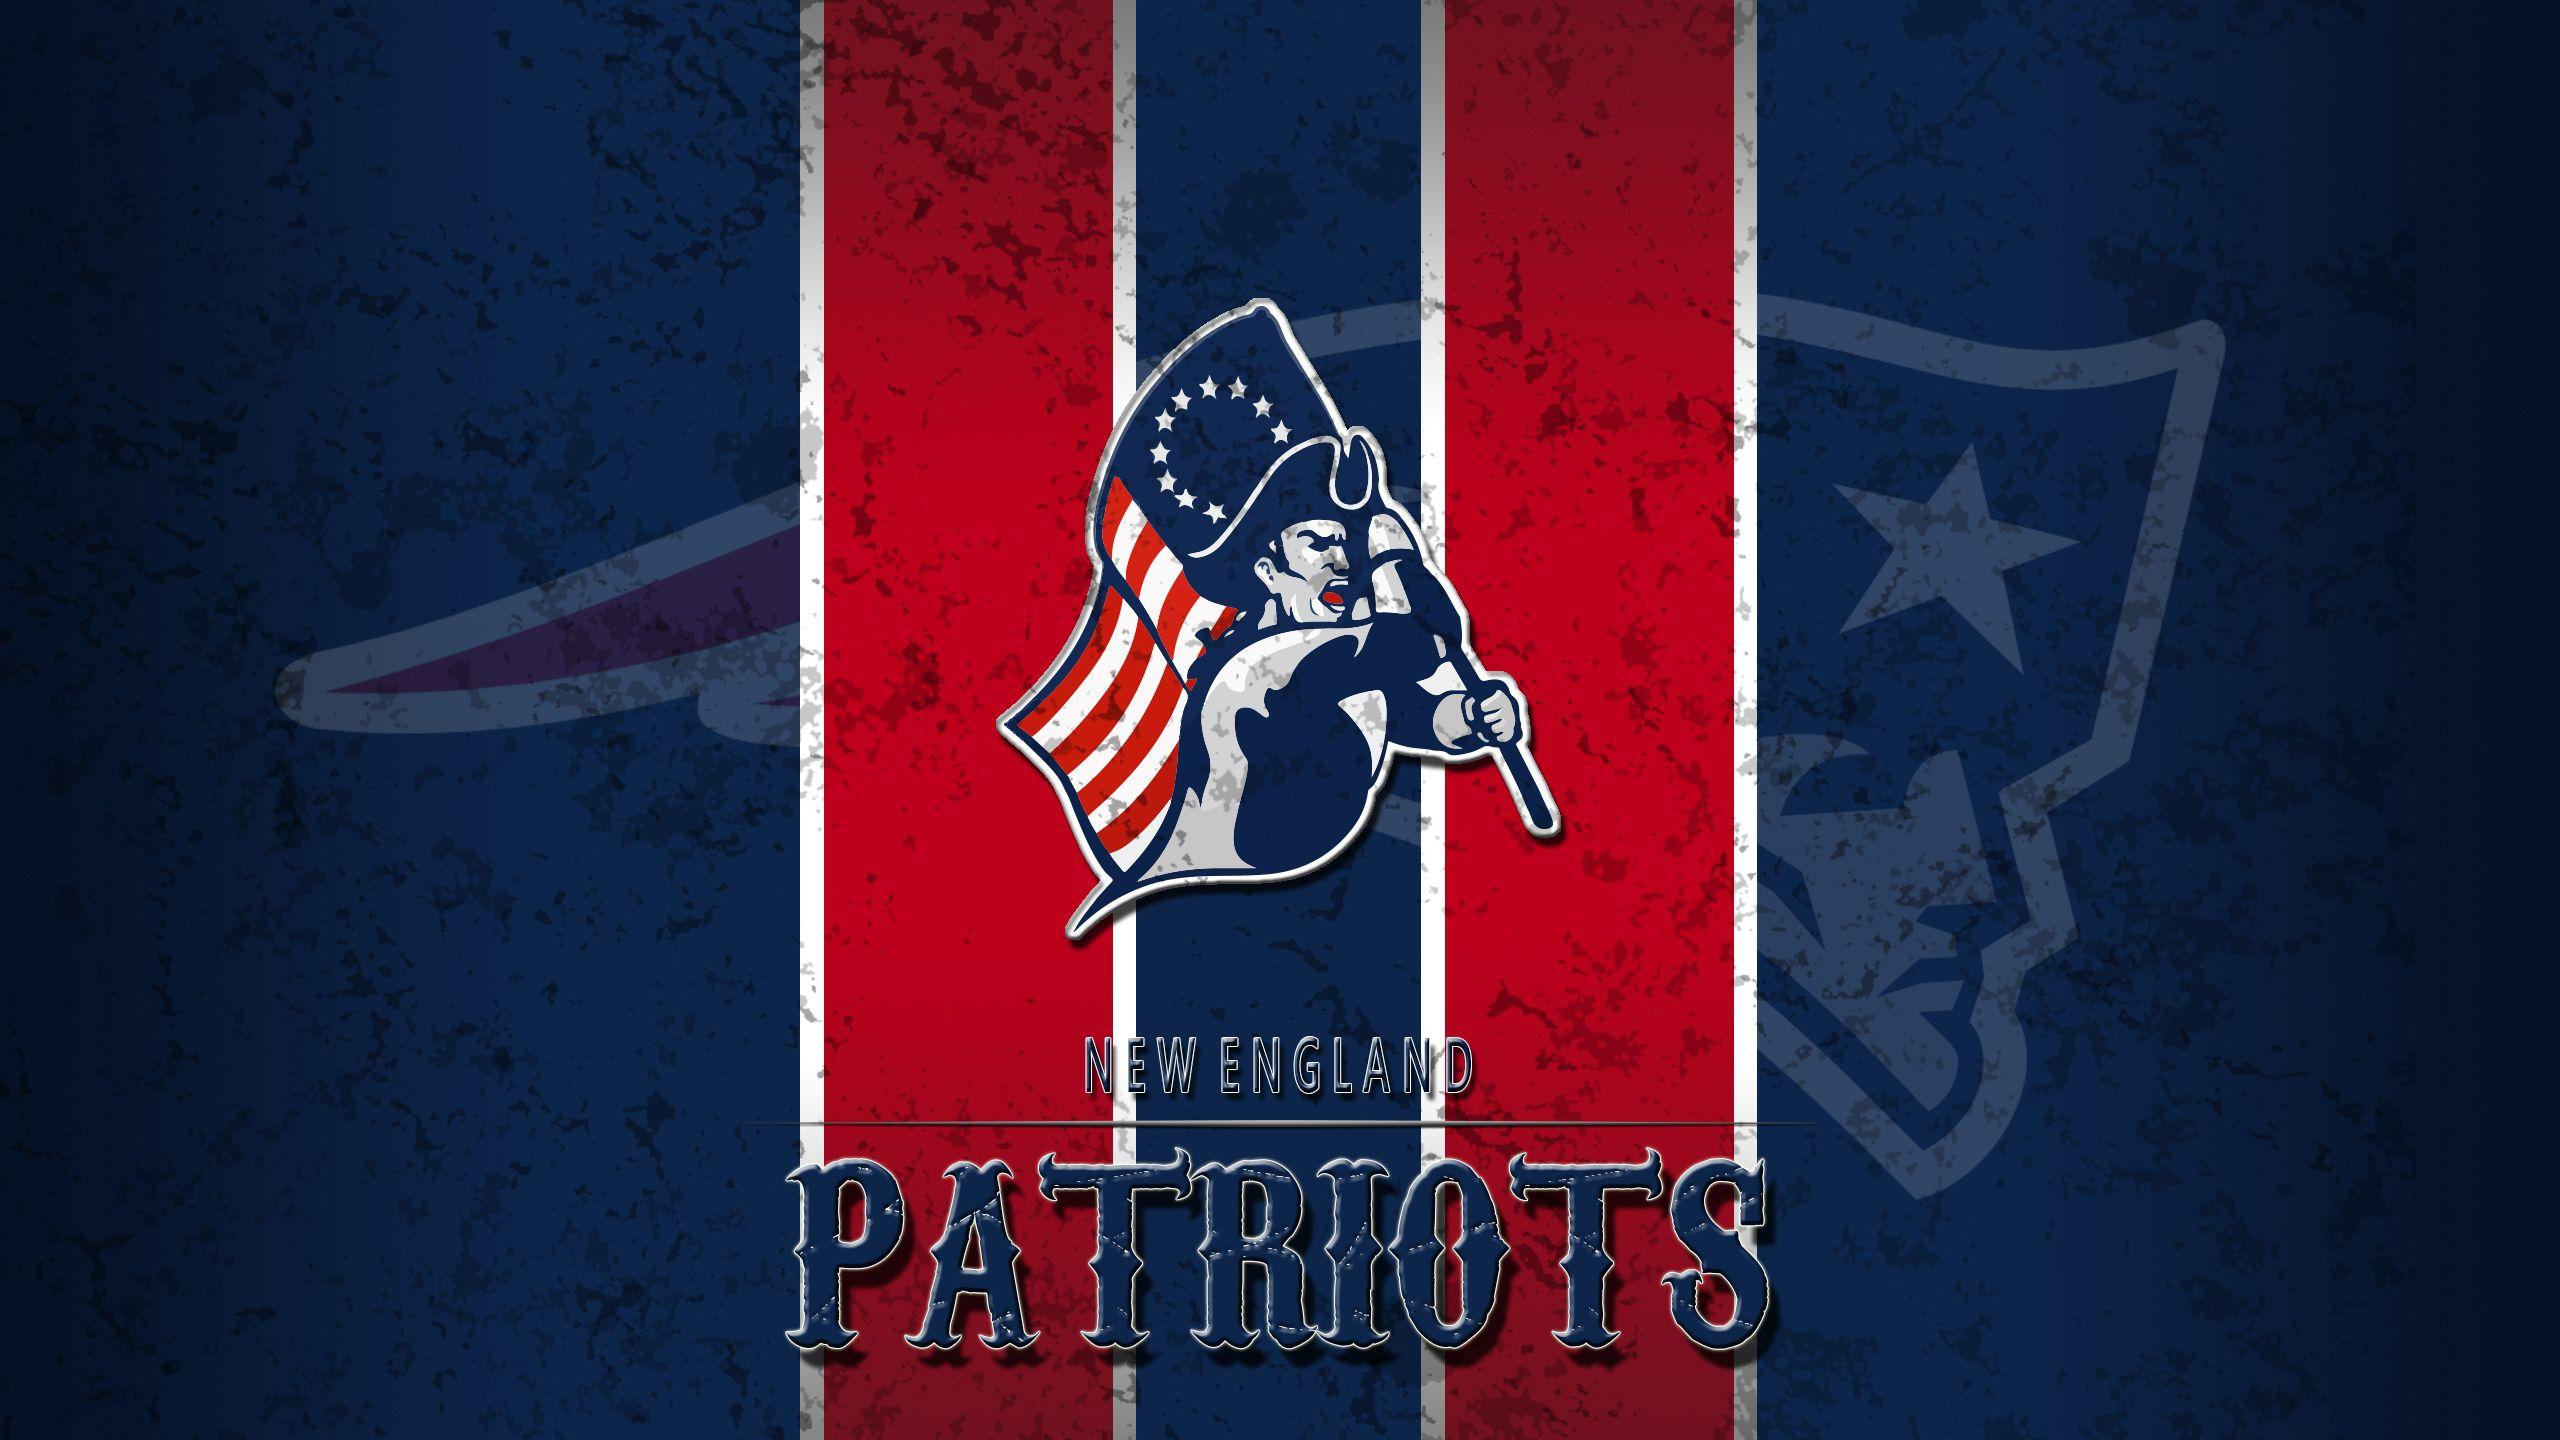 NFL Team Logo New England Patriots wallpaper HD 2016 in Football .